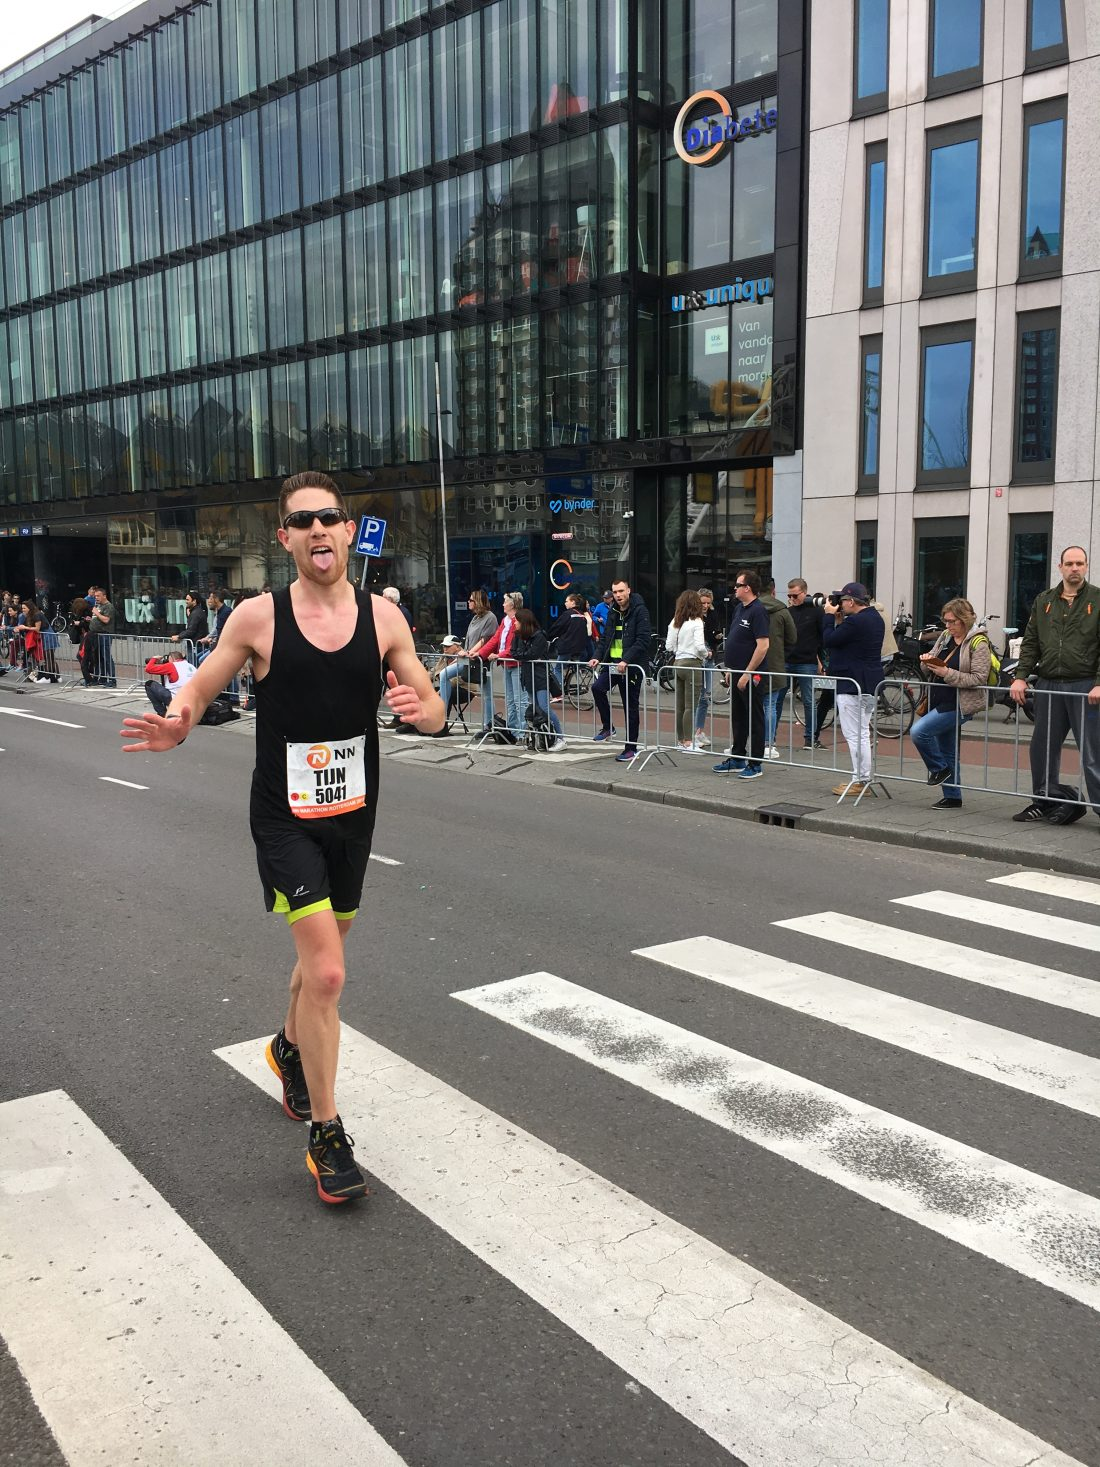 mister charming at 41 km - blaak - marathon rotterdam